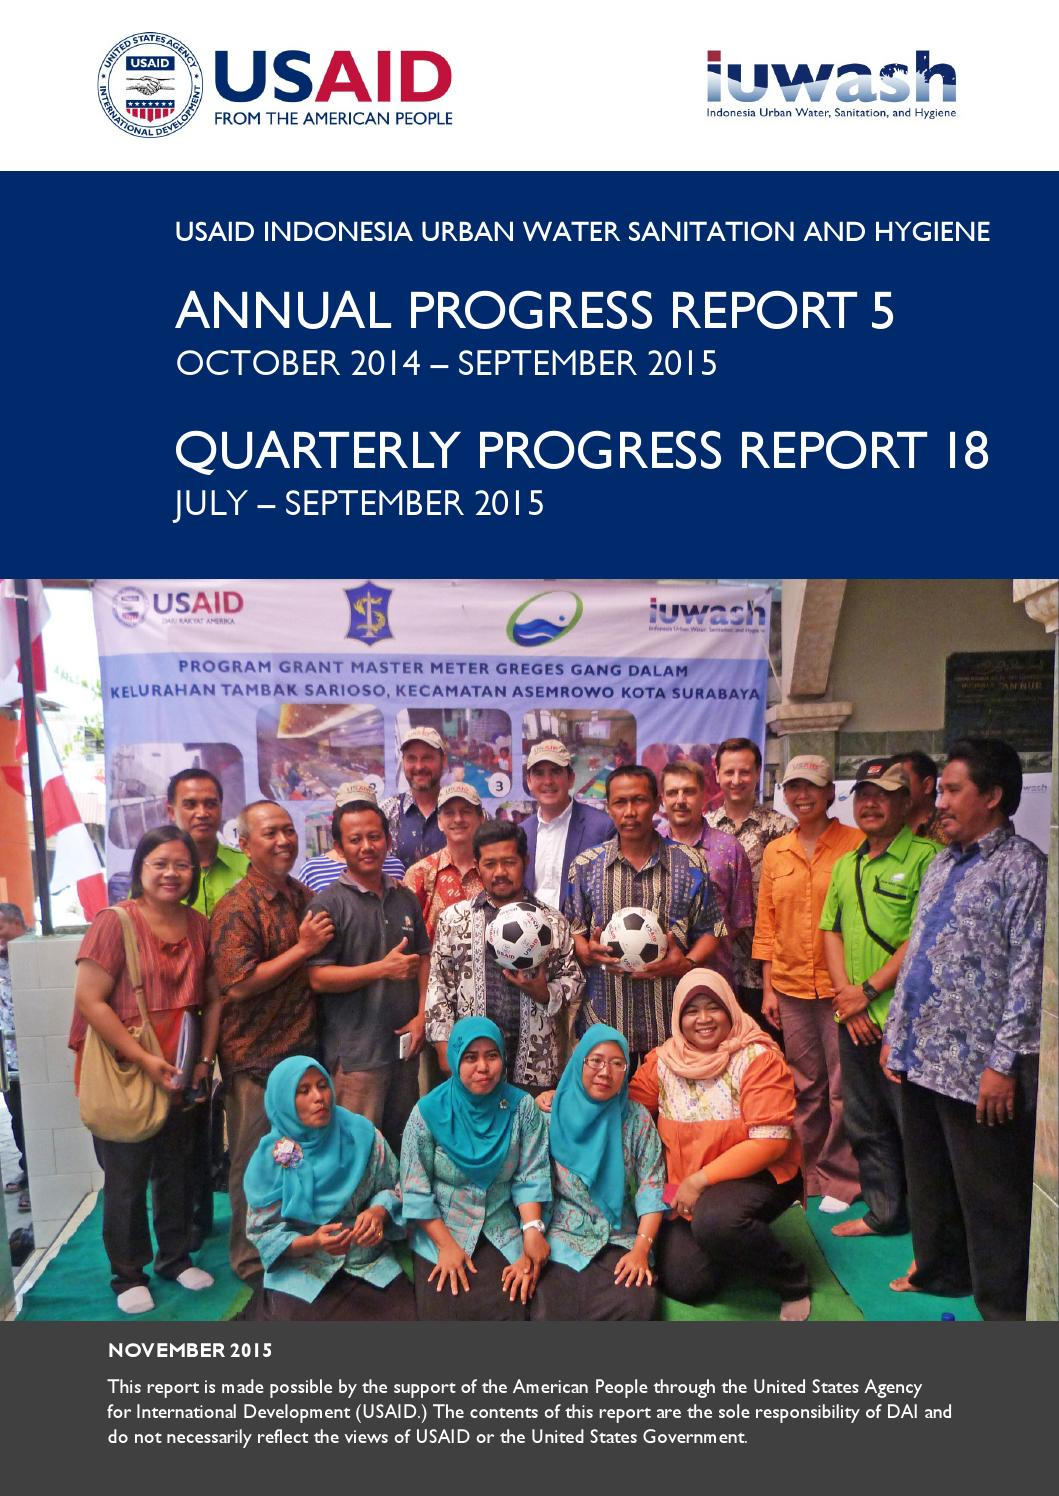 USAID IUWASH Annual Progress Report 5 Oct 2014  Sept